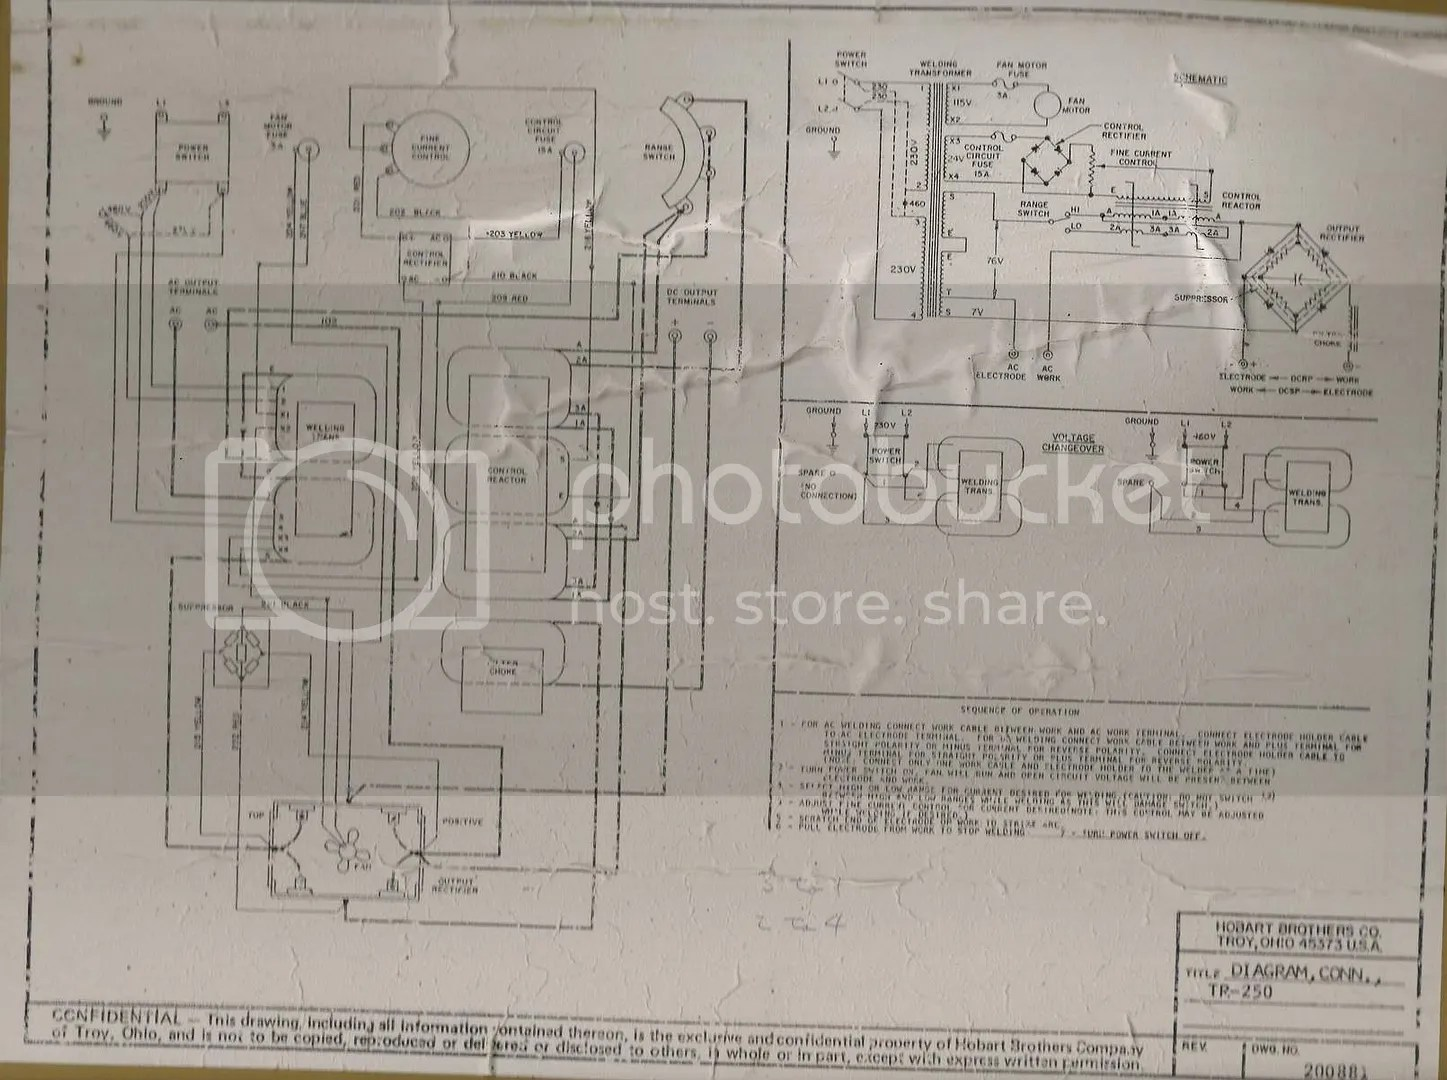 miller 250 welder wiring diagram upper thermostat electric water heater welding circuit schematic best library scr control and breaker tripping archive